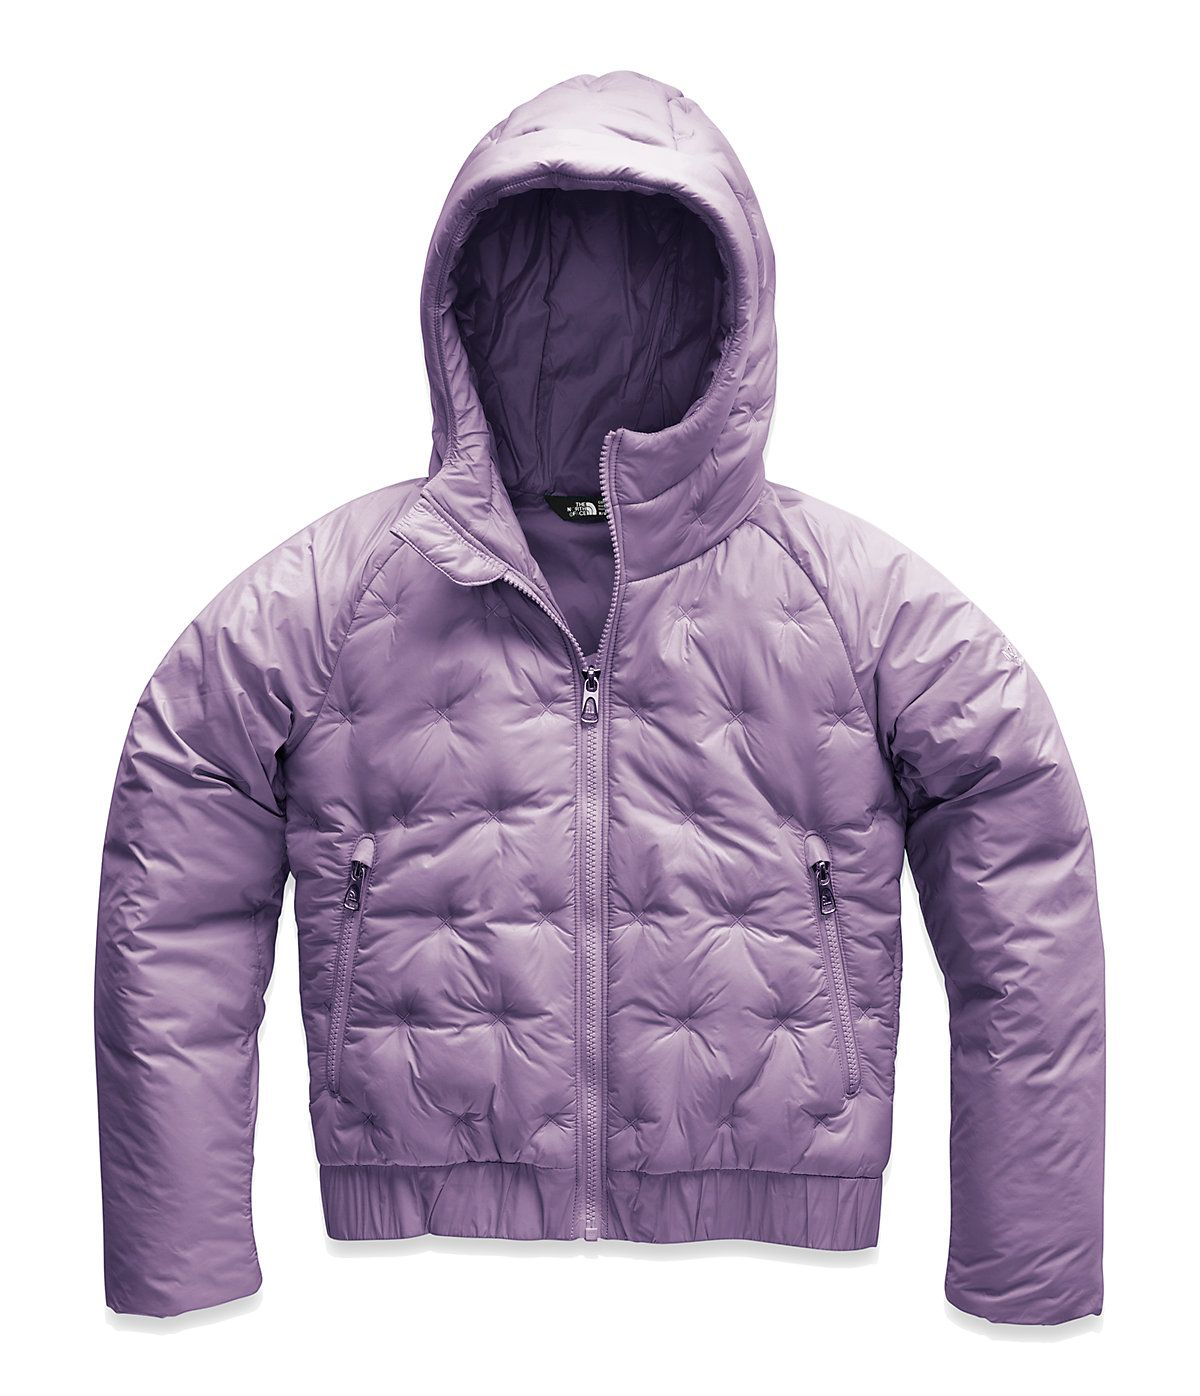 148e3e4c4 Girls' Mashup Hoodie in 2019 | Products | North face girls, North ...